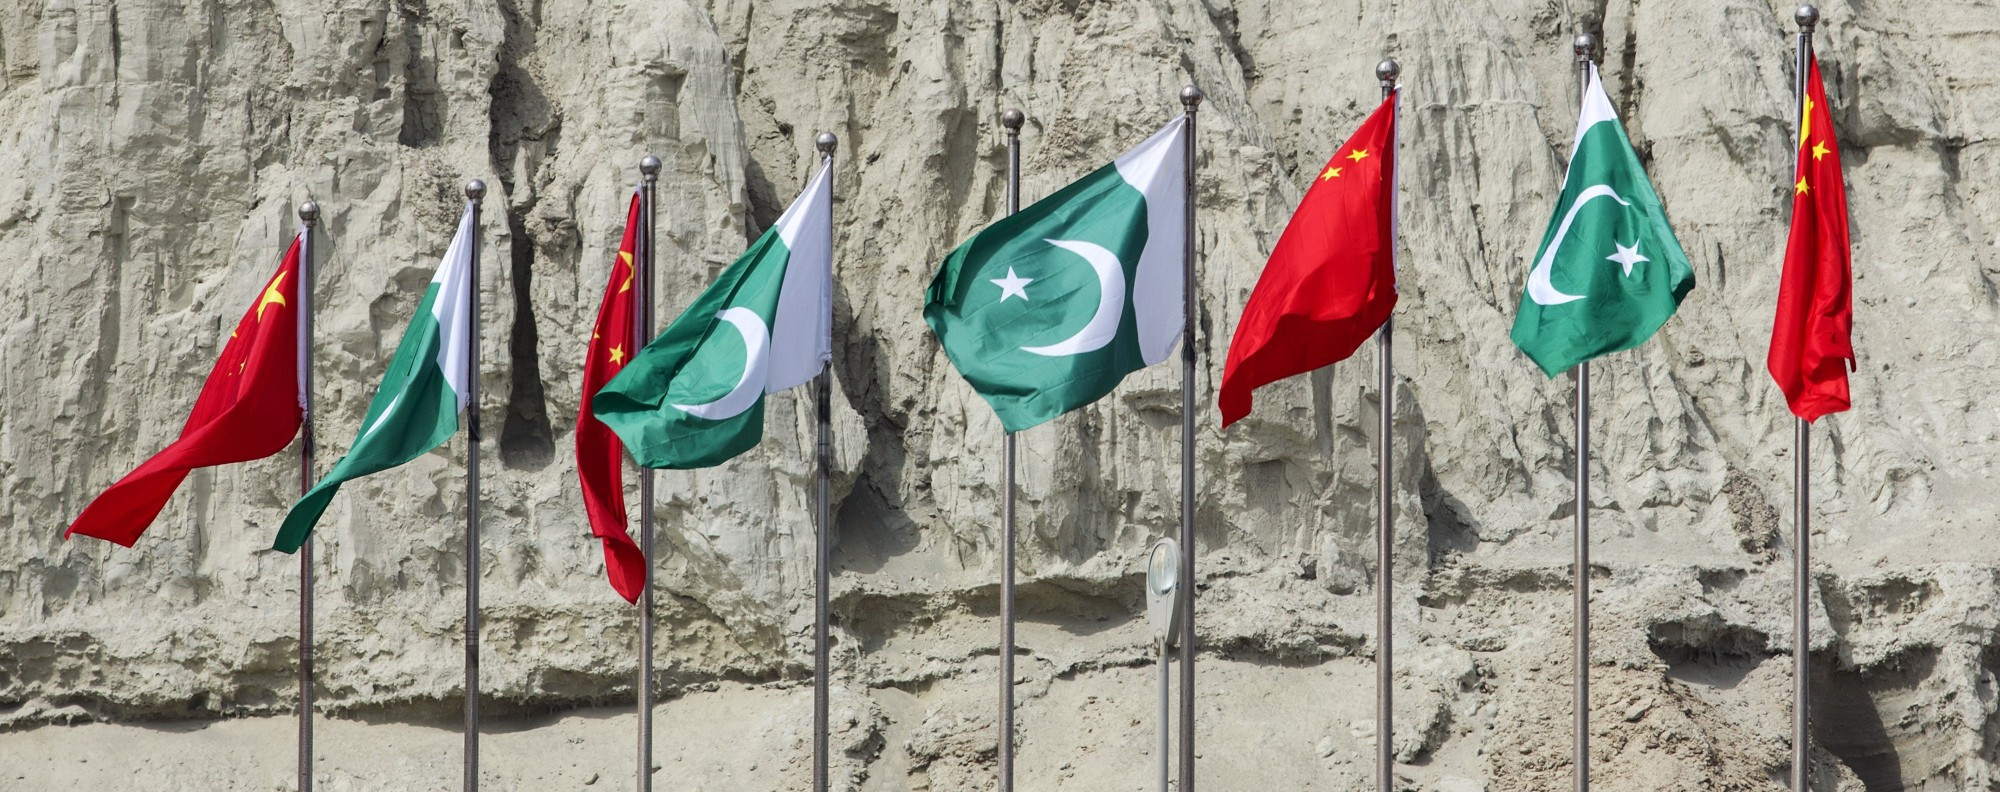 WITH CPEC, PAKISTAN RISKS CHINESE ANGER BY COURTING SAUDI ARABIA